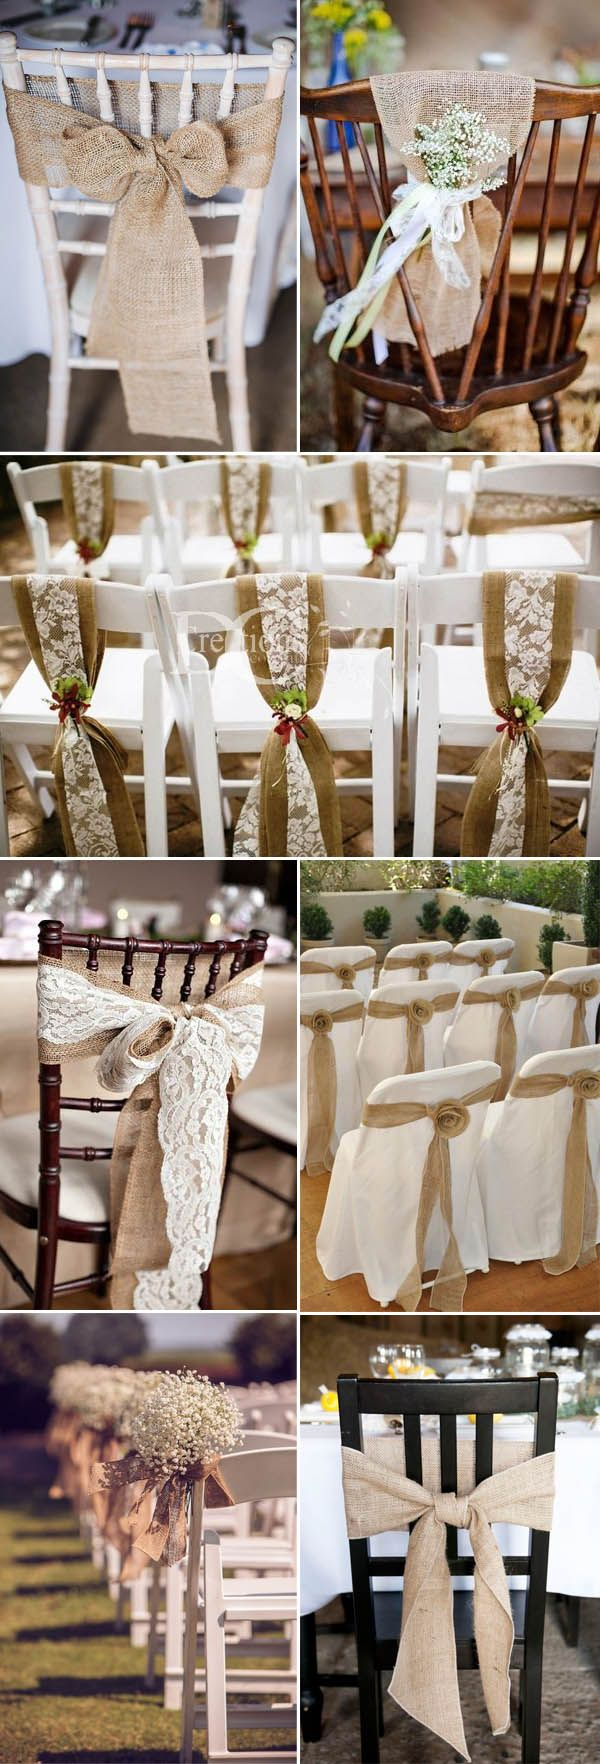 Decor for chairs wedding The Most Complete Burlap Rustic Wedding Ideas For Your Inspiration